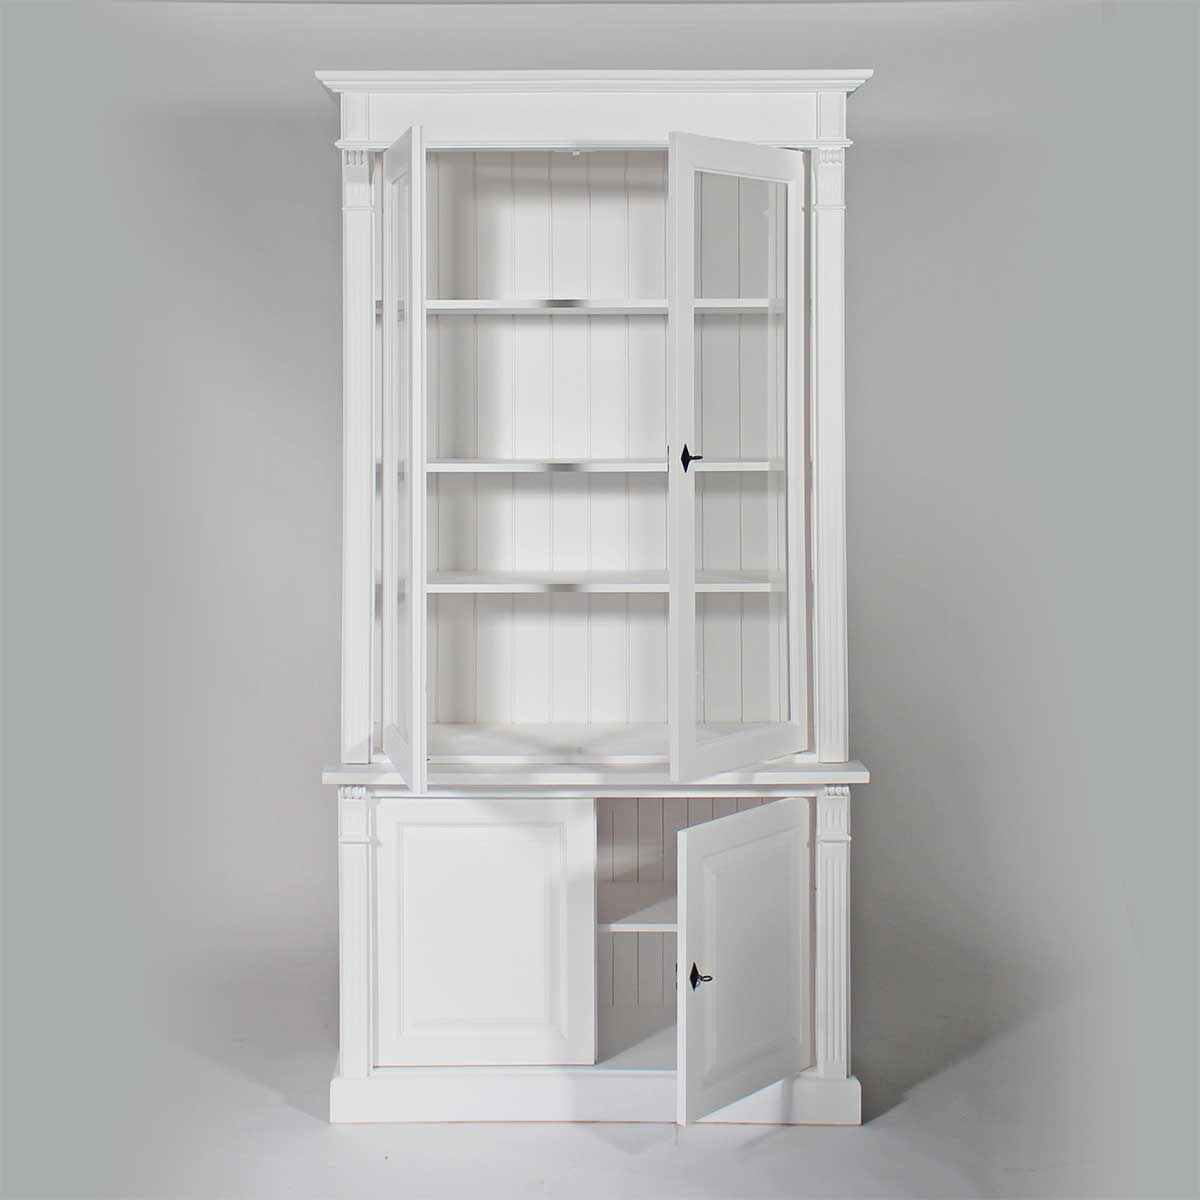 buffet vaisselier bois massif blanc 4 portes made in meubles. Black Bedroom Furniture Sets. Home Design Ideas